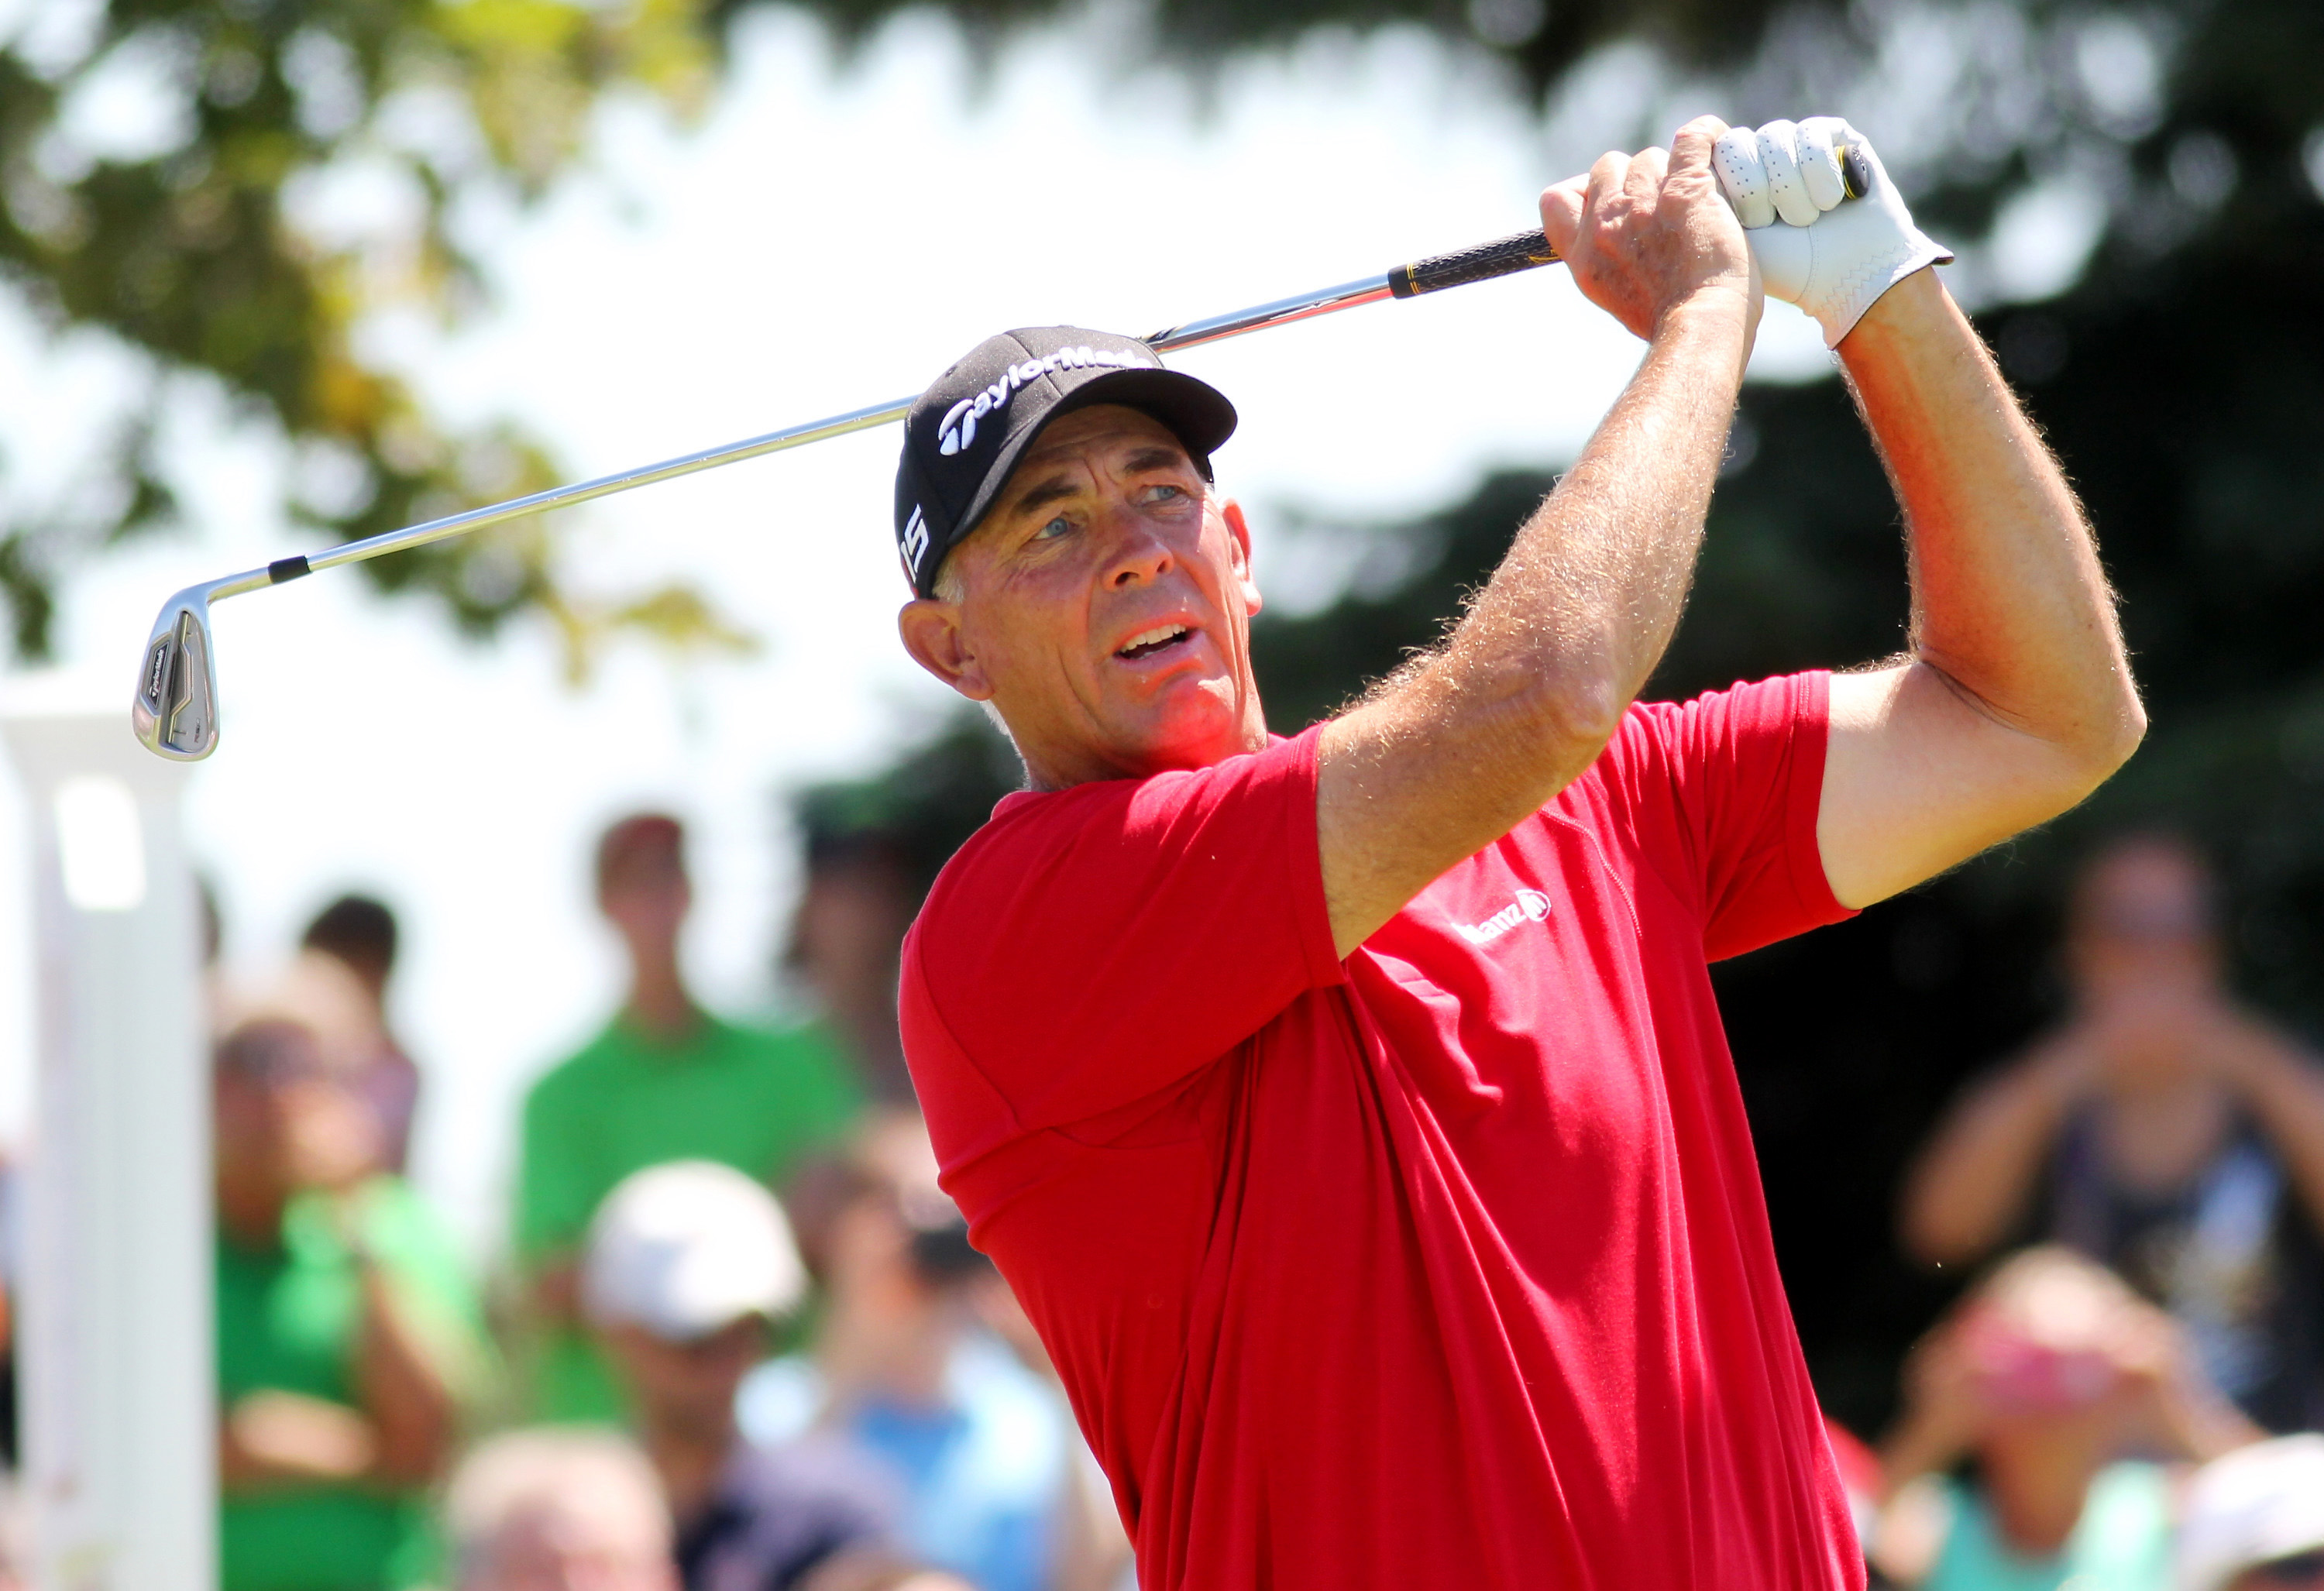 Tom Lehman tees off on the 8th hole during the second round of the Champions Tour 3M Championships golf tournament on Saturday, Aug. 1, 2015, at TPC Twins Cities in Blaine, Minn. (AP Photo/Andy Clayton King)